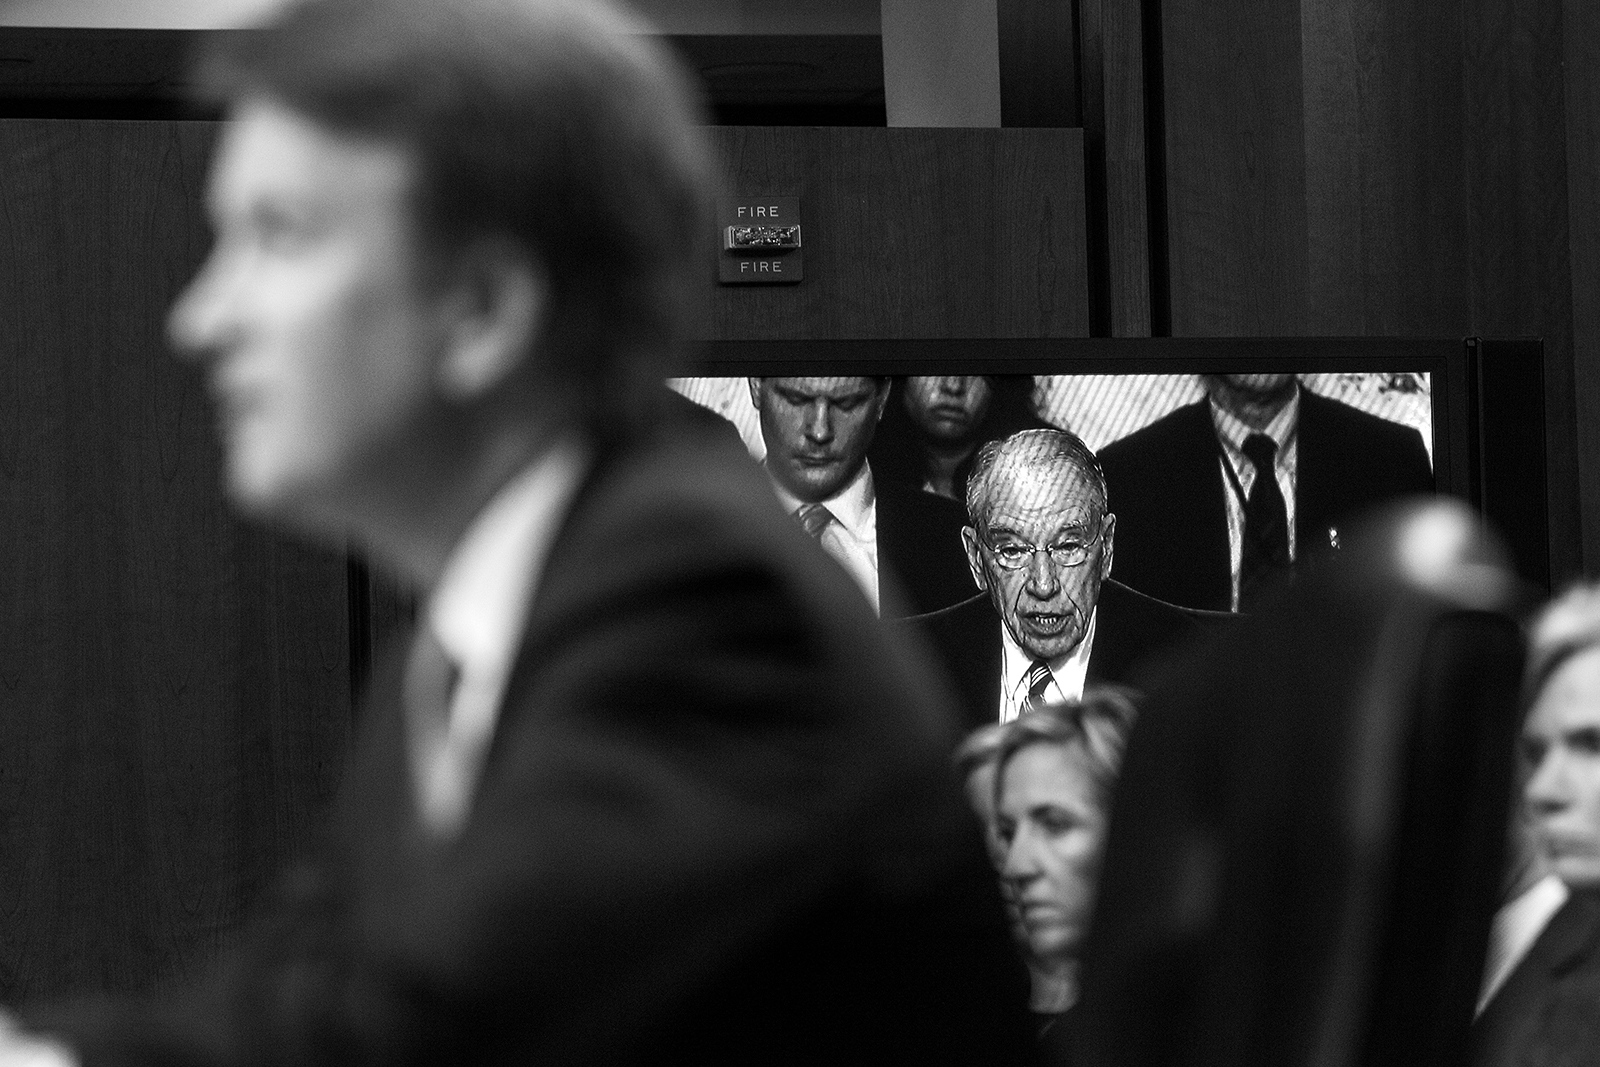 Chairman of the Senate Judiciary Committee Chuck Grassley opens the second day of the confirmation hearing for Brett Kavanaugh.